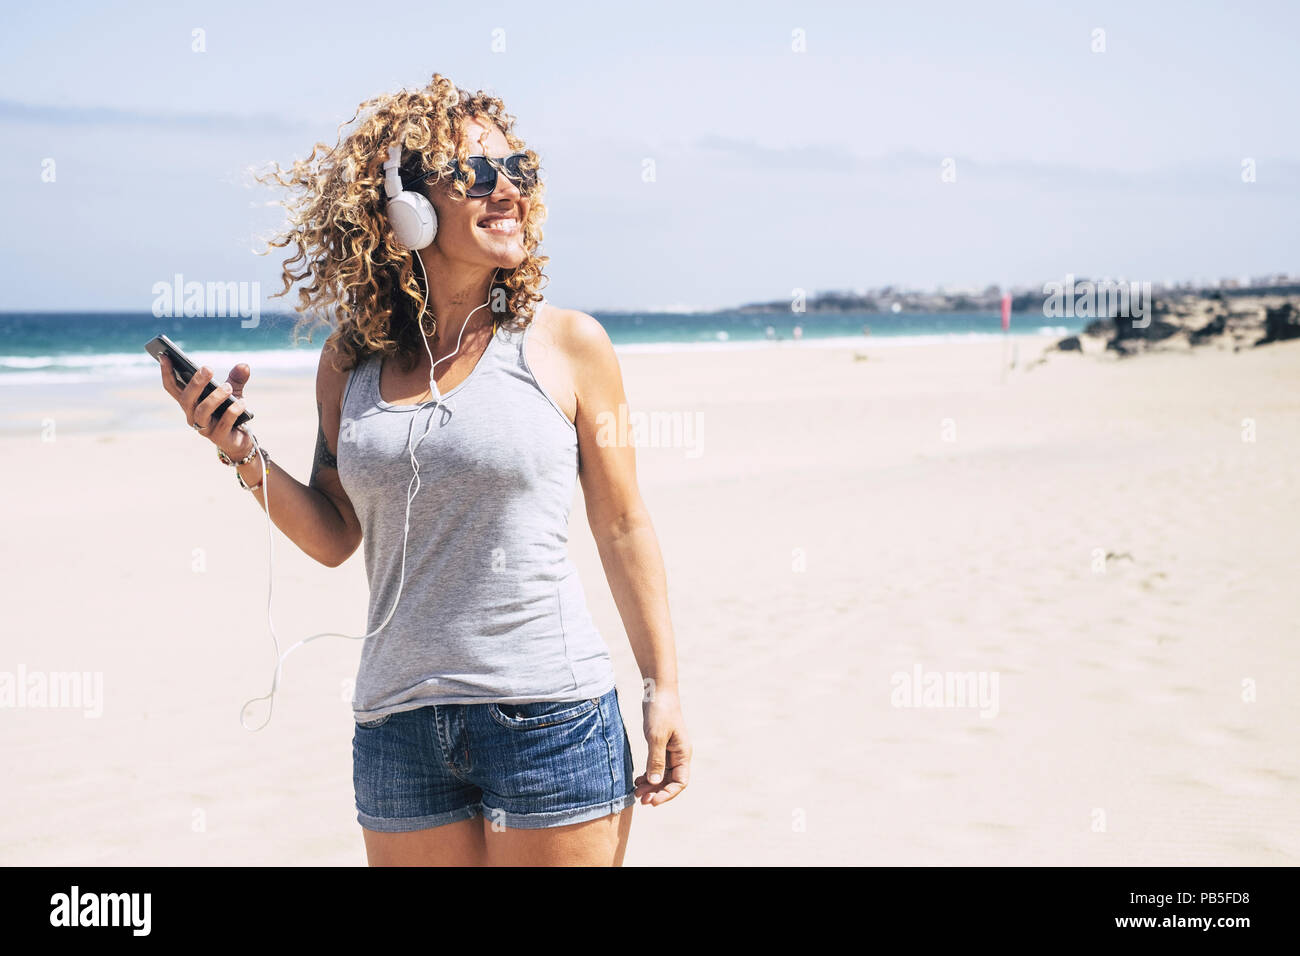 cheerful and attractive caucasian young woman enjoy the beach and the summer vacation. listening music with phone and earphones walking on the sand. h - Stock Image